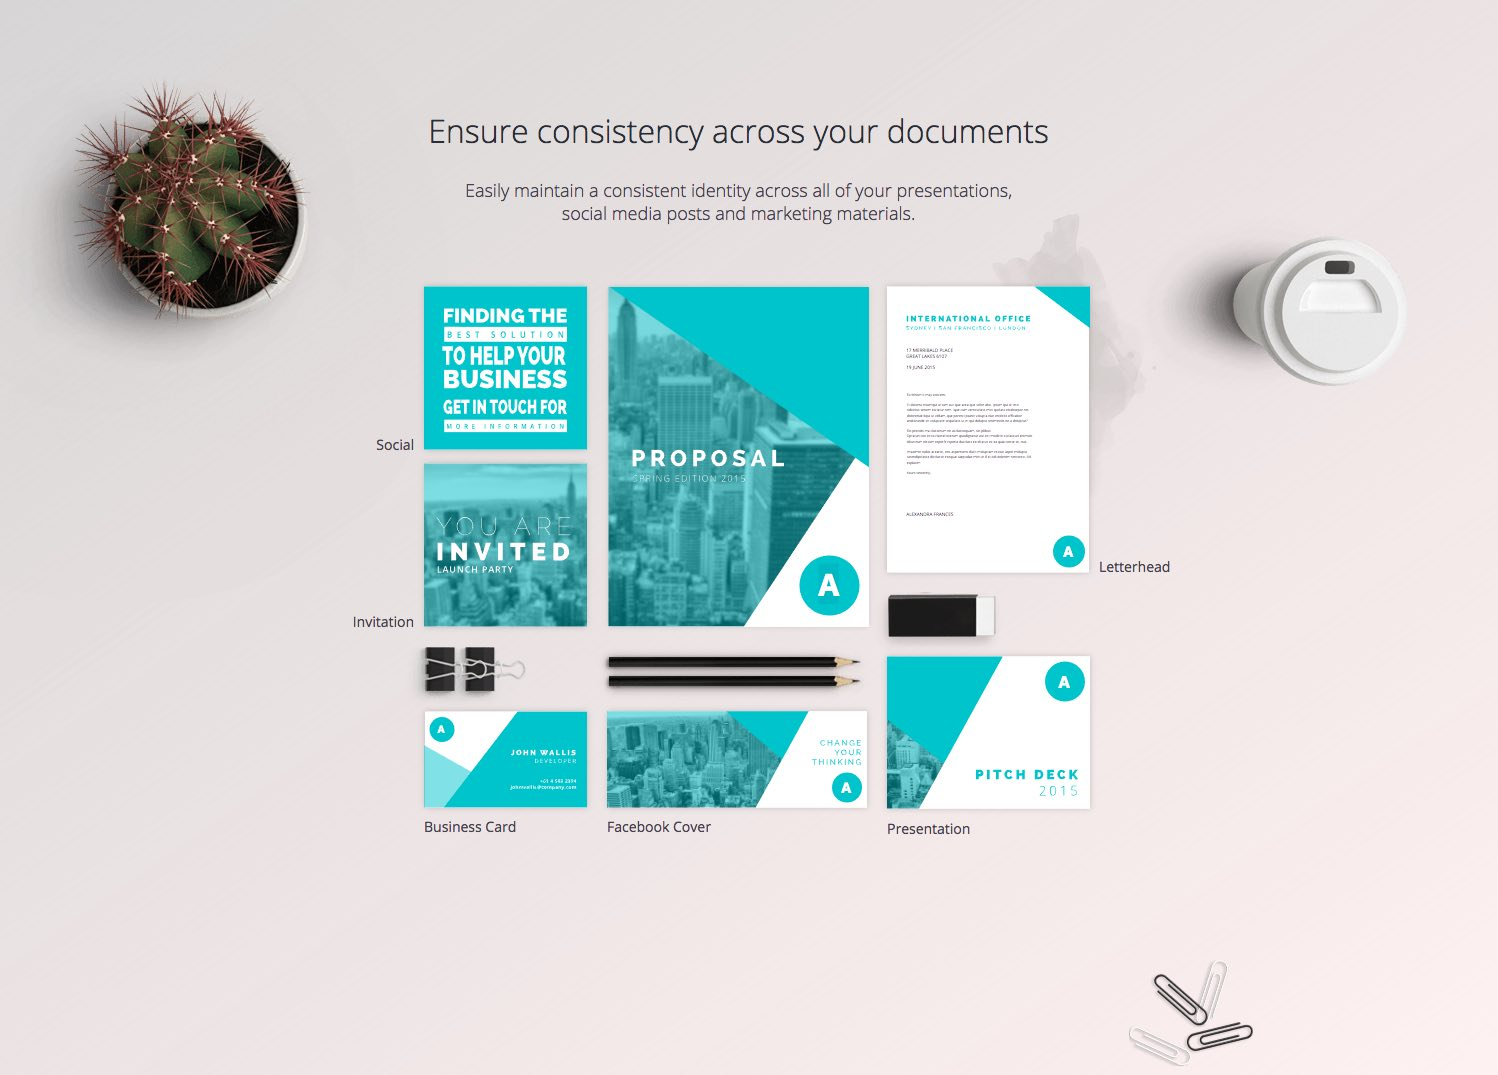 How to Use Canva to Create On-Brand Social Media Graphics (Video